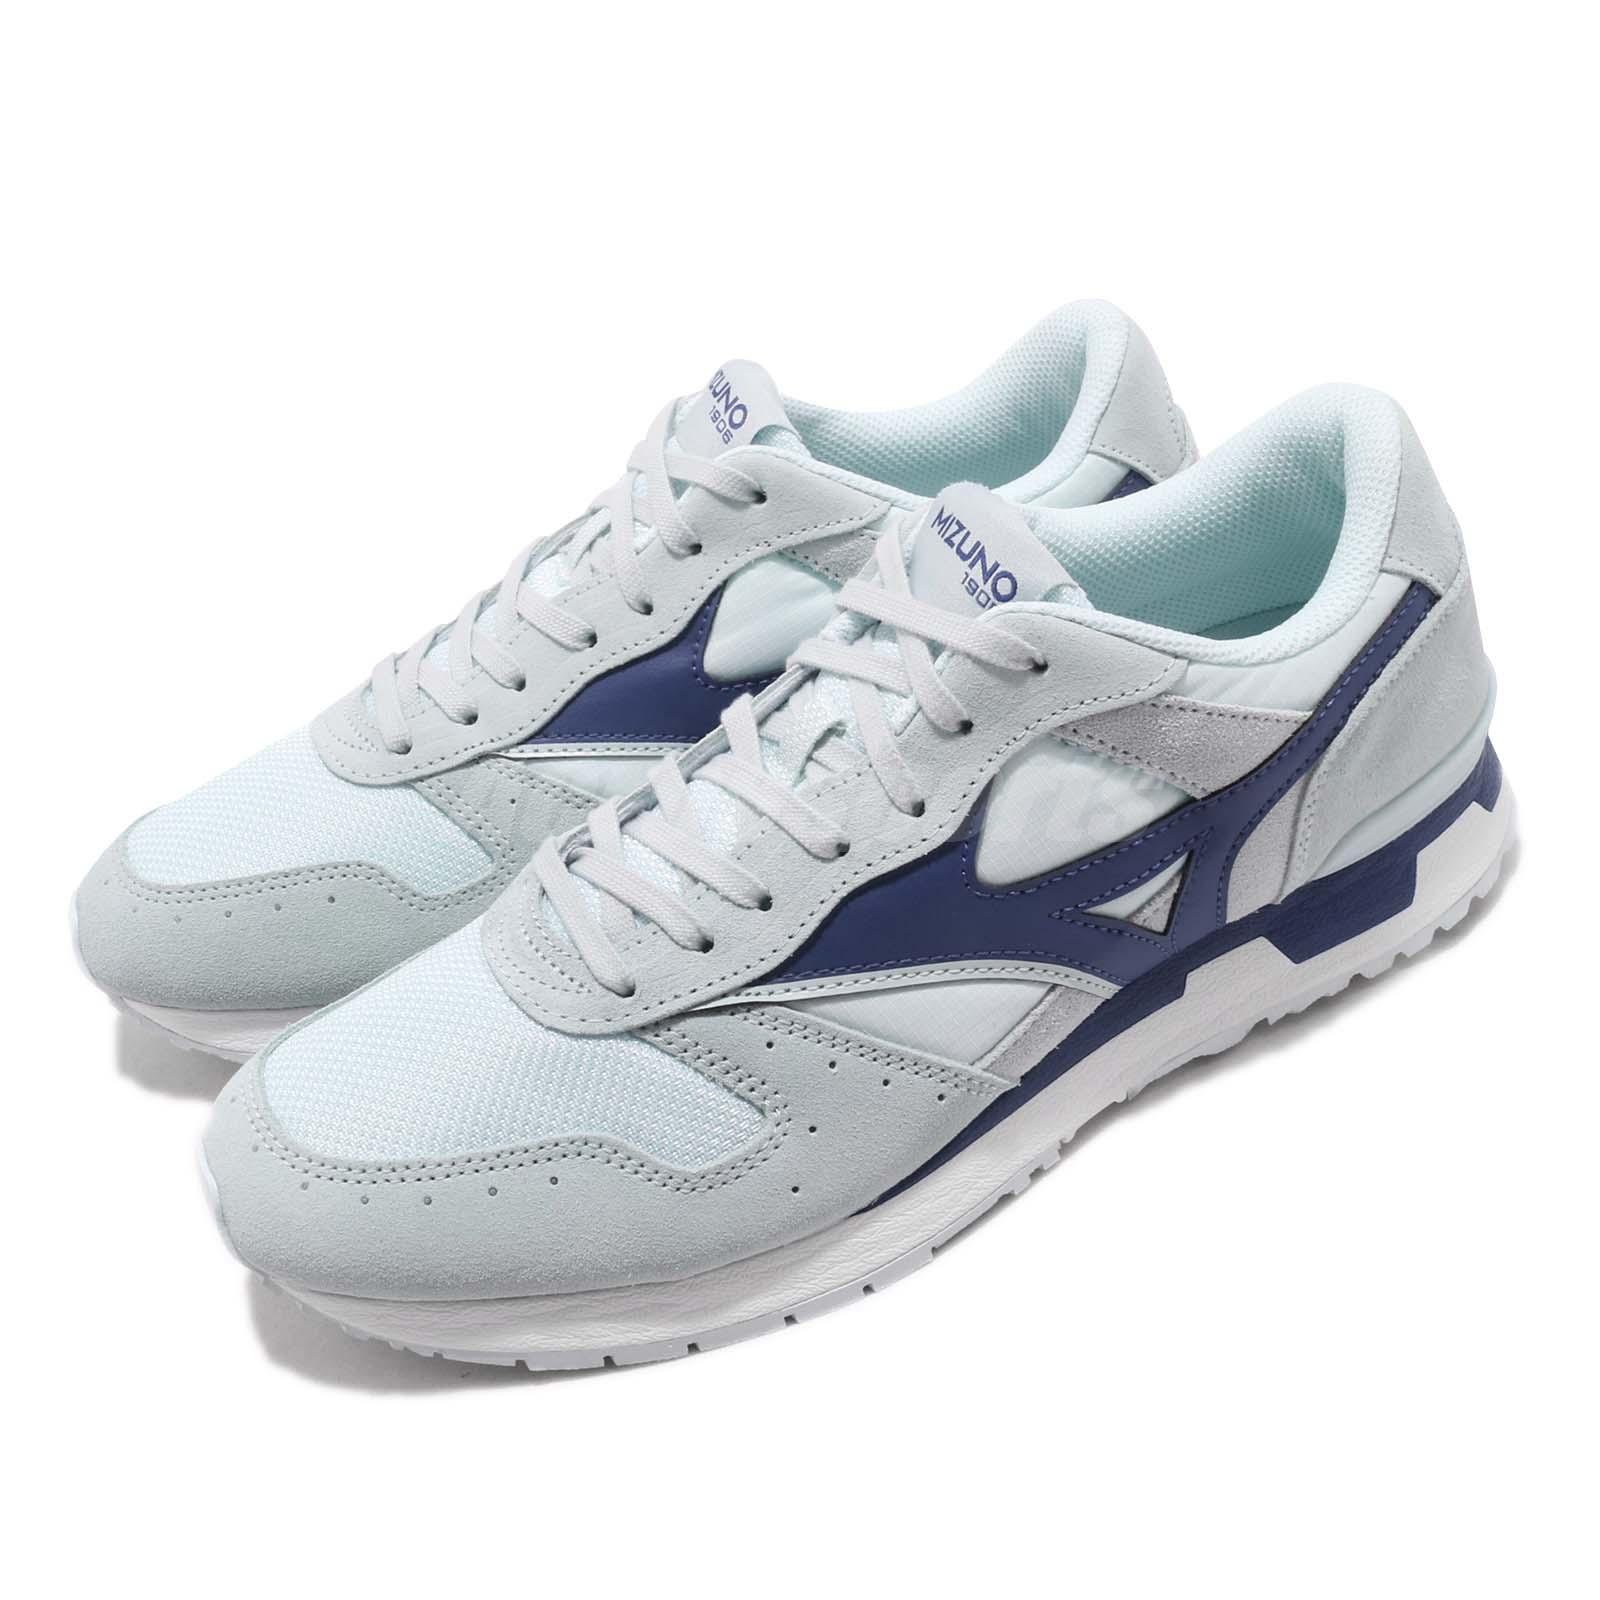 b422390f54 Details about Mizuno GV87 Navy Grey White Men Running Casual Shoes Sneakers  D1GA1908-25